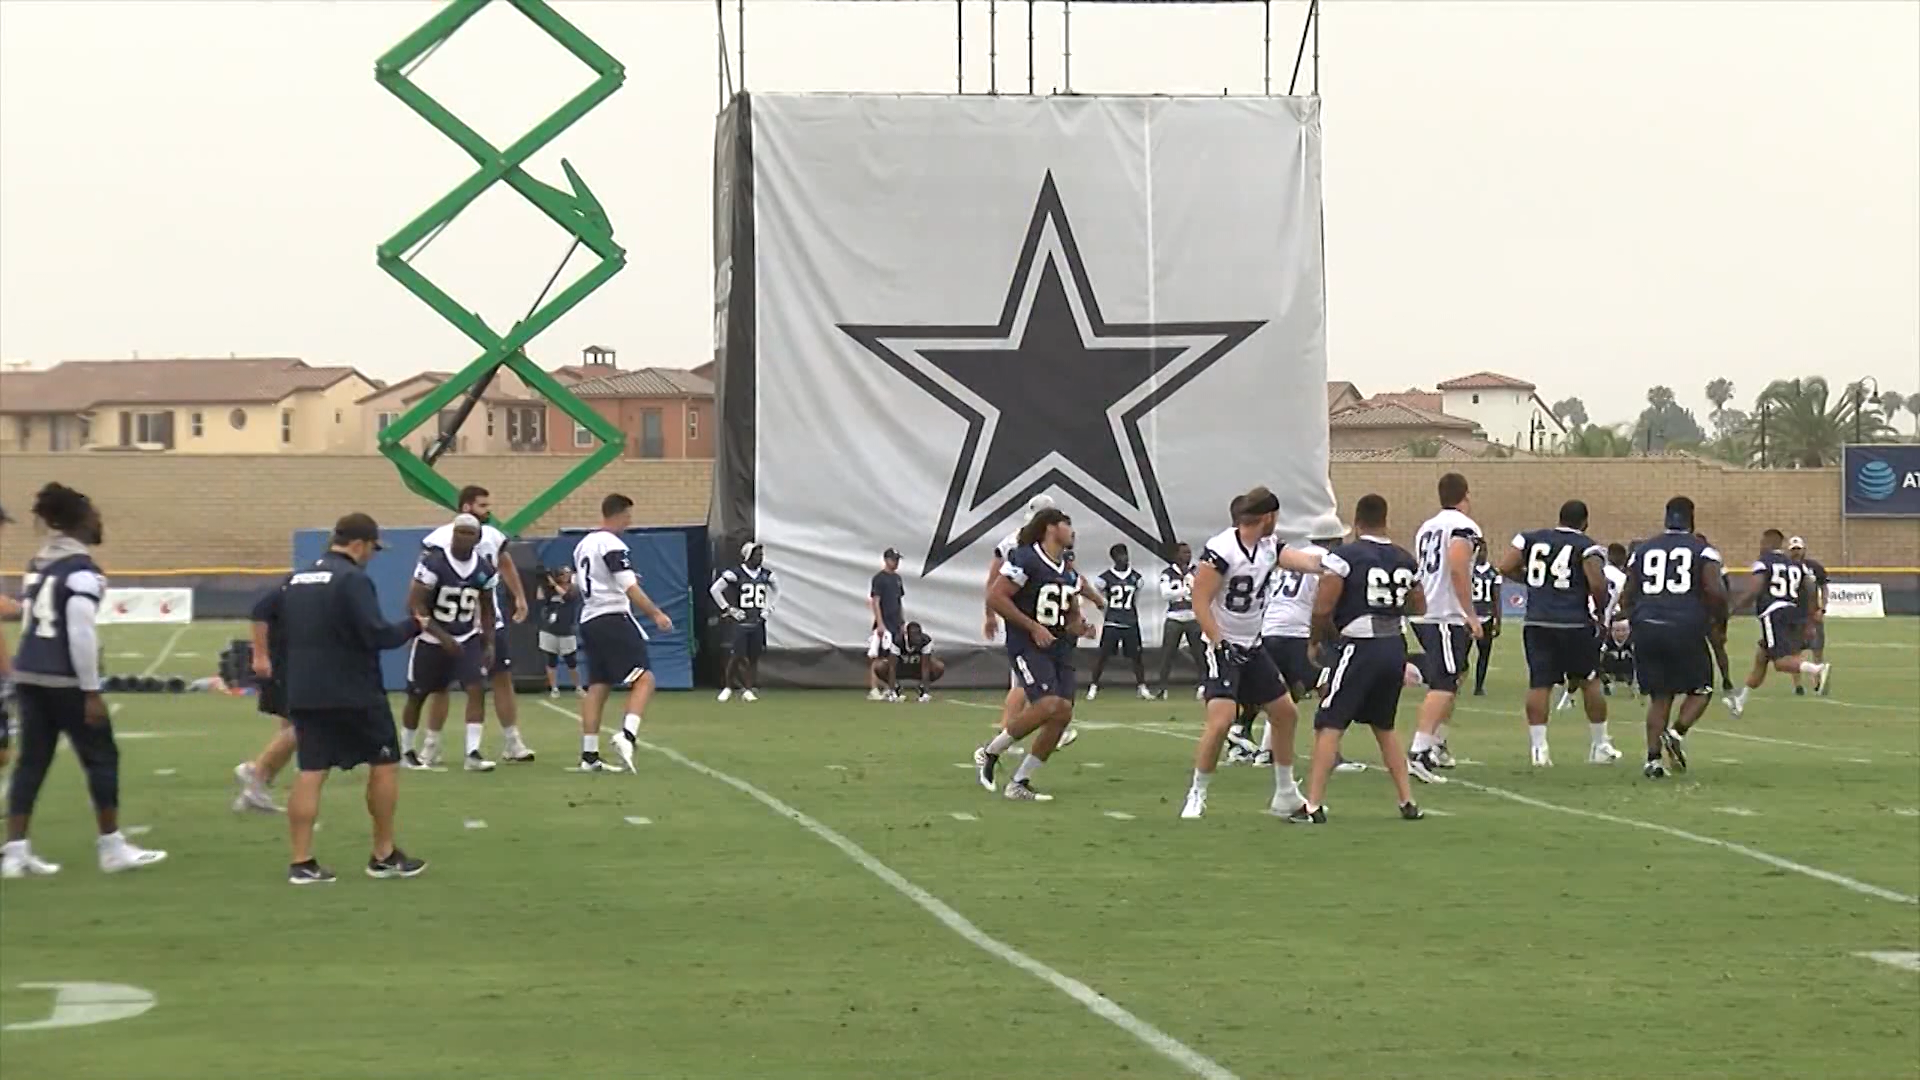 Nfl Tells Teams They Must Hold Training Camps At Home Ktsm 9 News